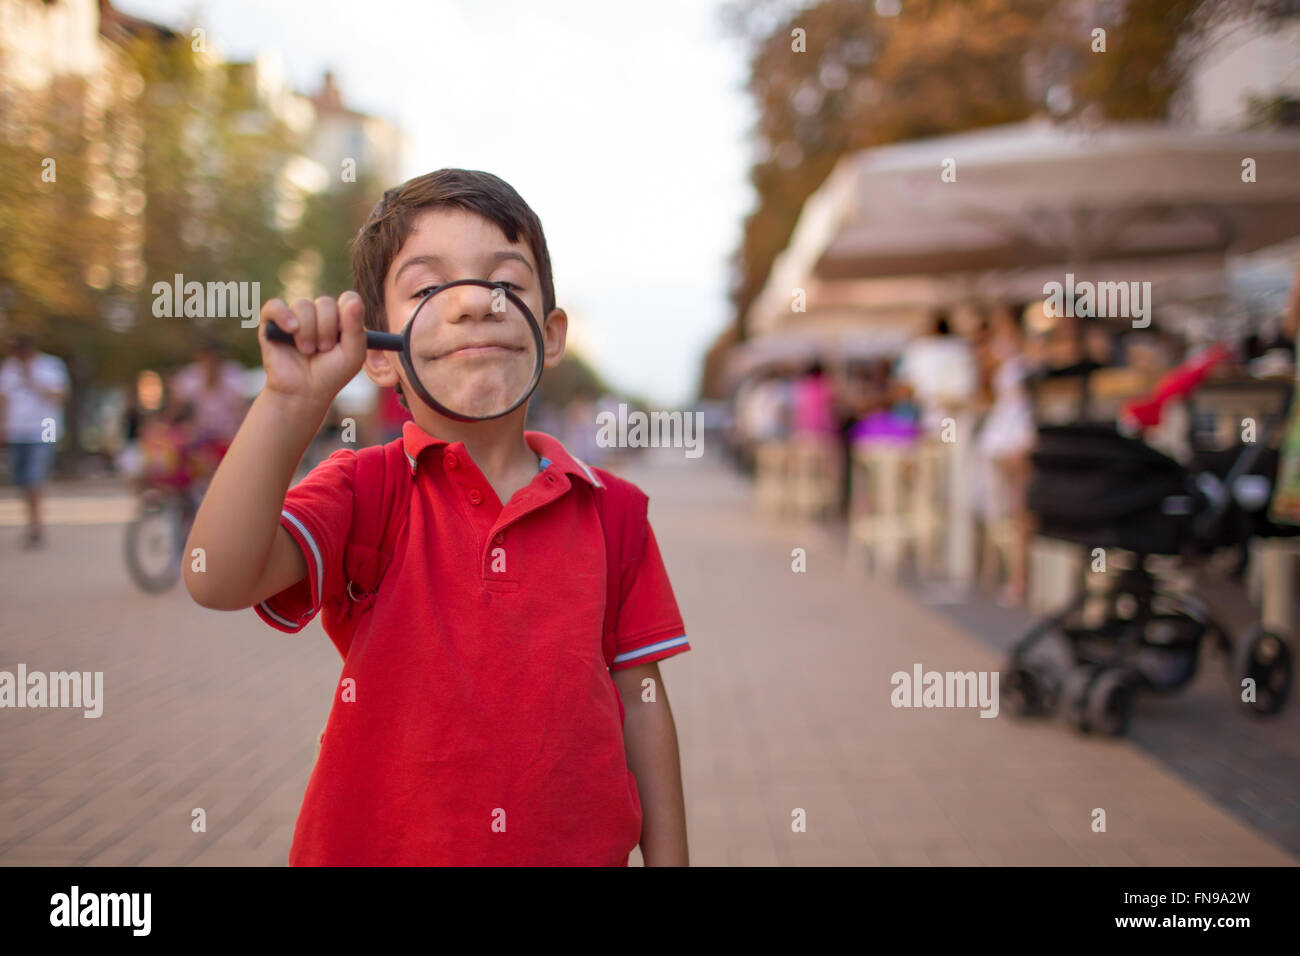 Young boy smiling through magnifying glass, sofia, bulgaria - Stock Image